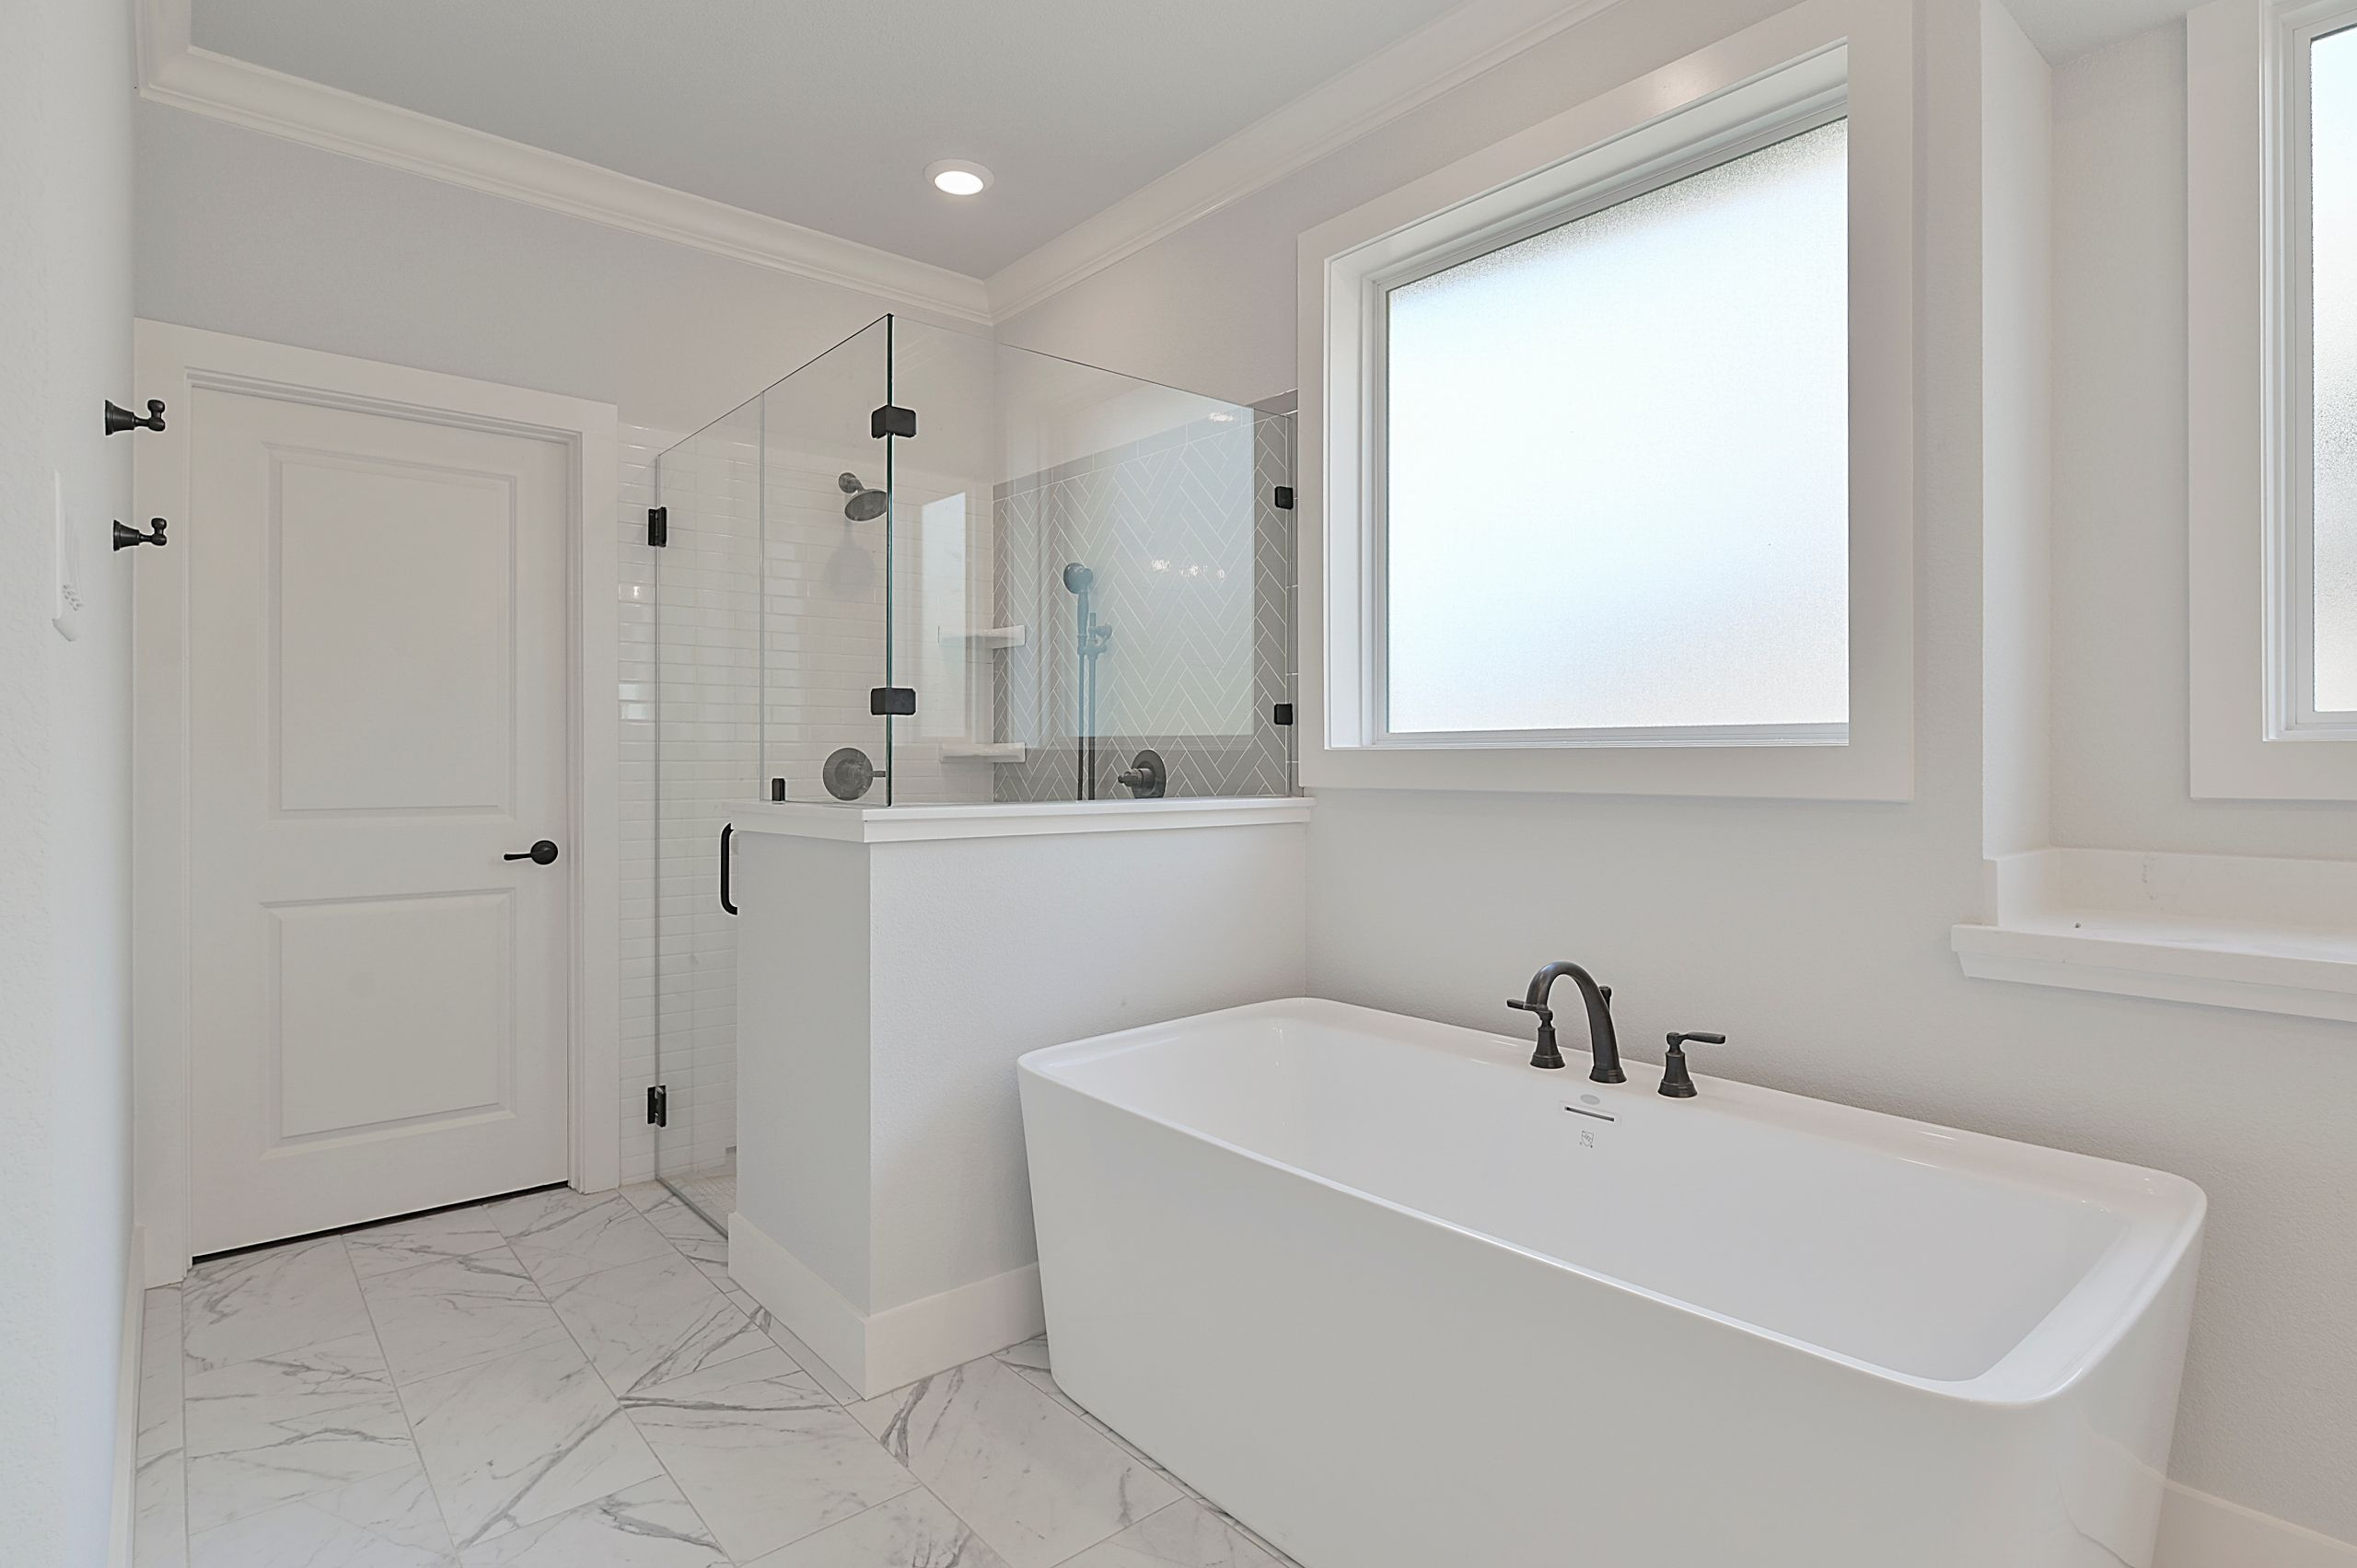 Bathroom featured in the Norah By Blackstone Homes in Bryan-College Station, TX